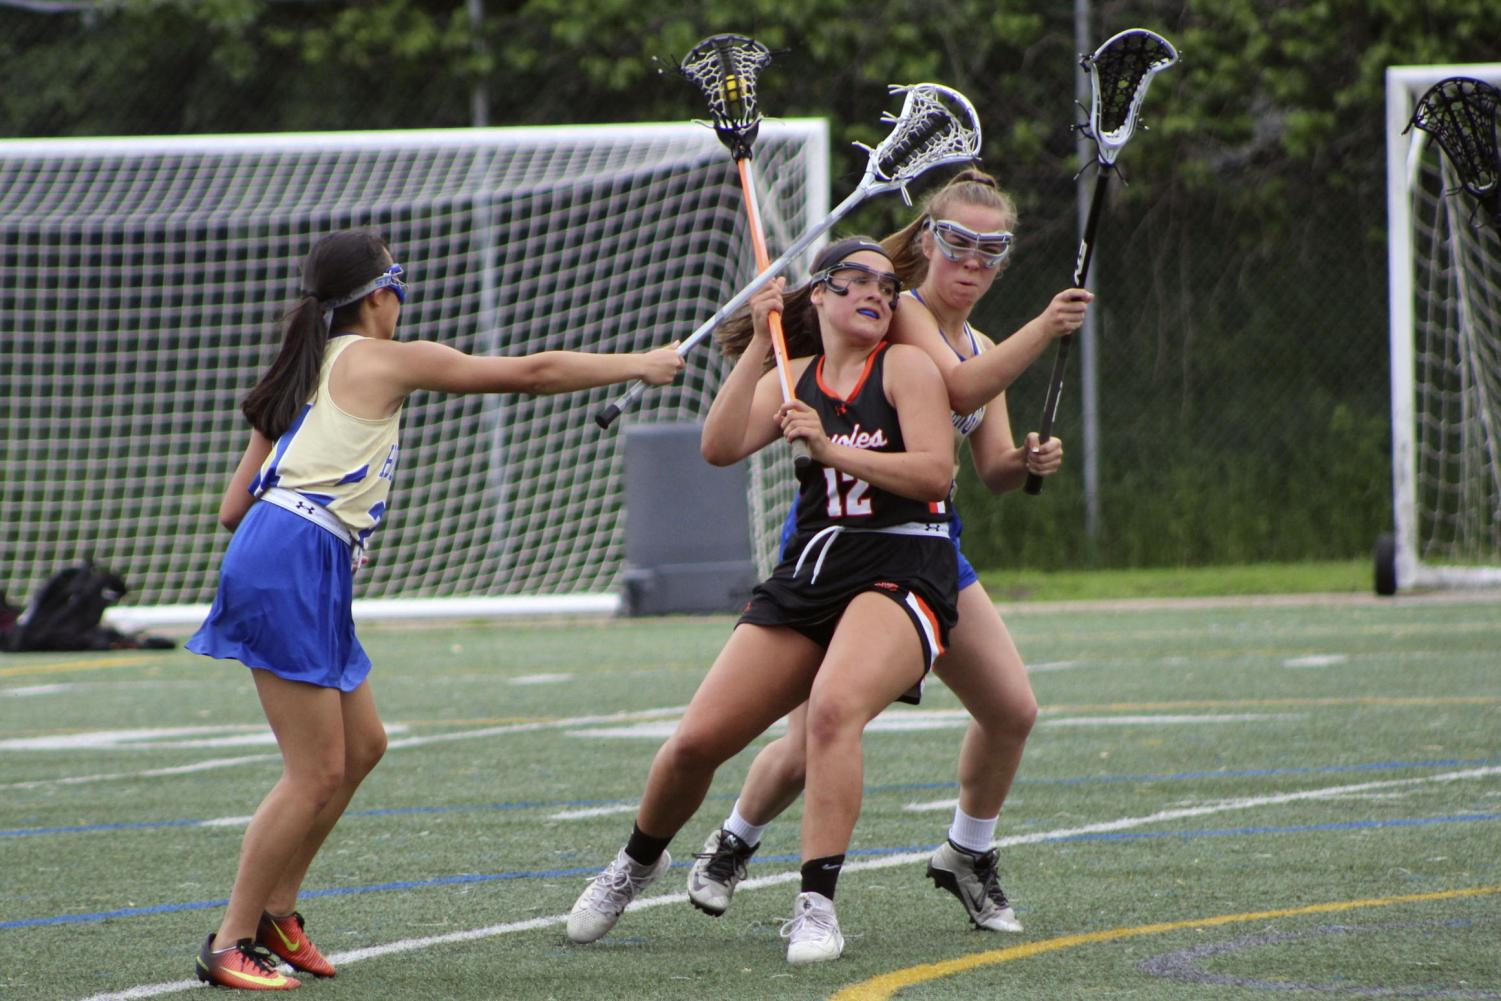 Junior Sarah McCallon pushes her way past an opposing team player to pass the ball during the 2018 lacrosse season. During the 2019 season the locker rooms will be under construction and spring sports need to find a place to change before practice.